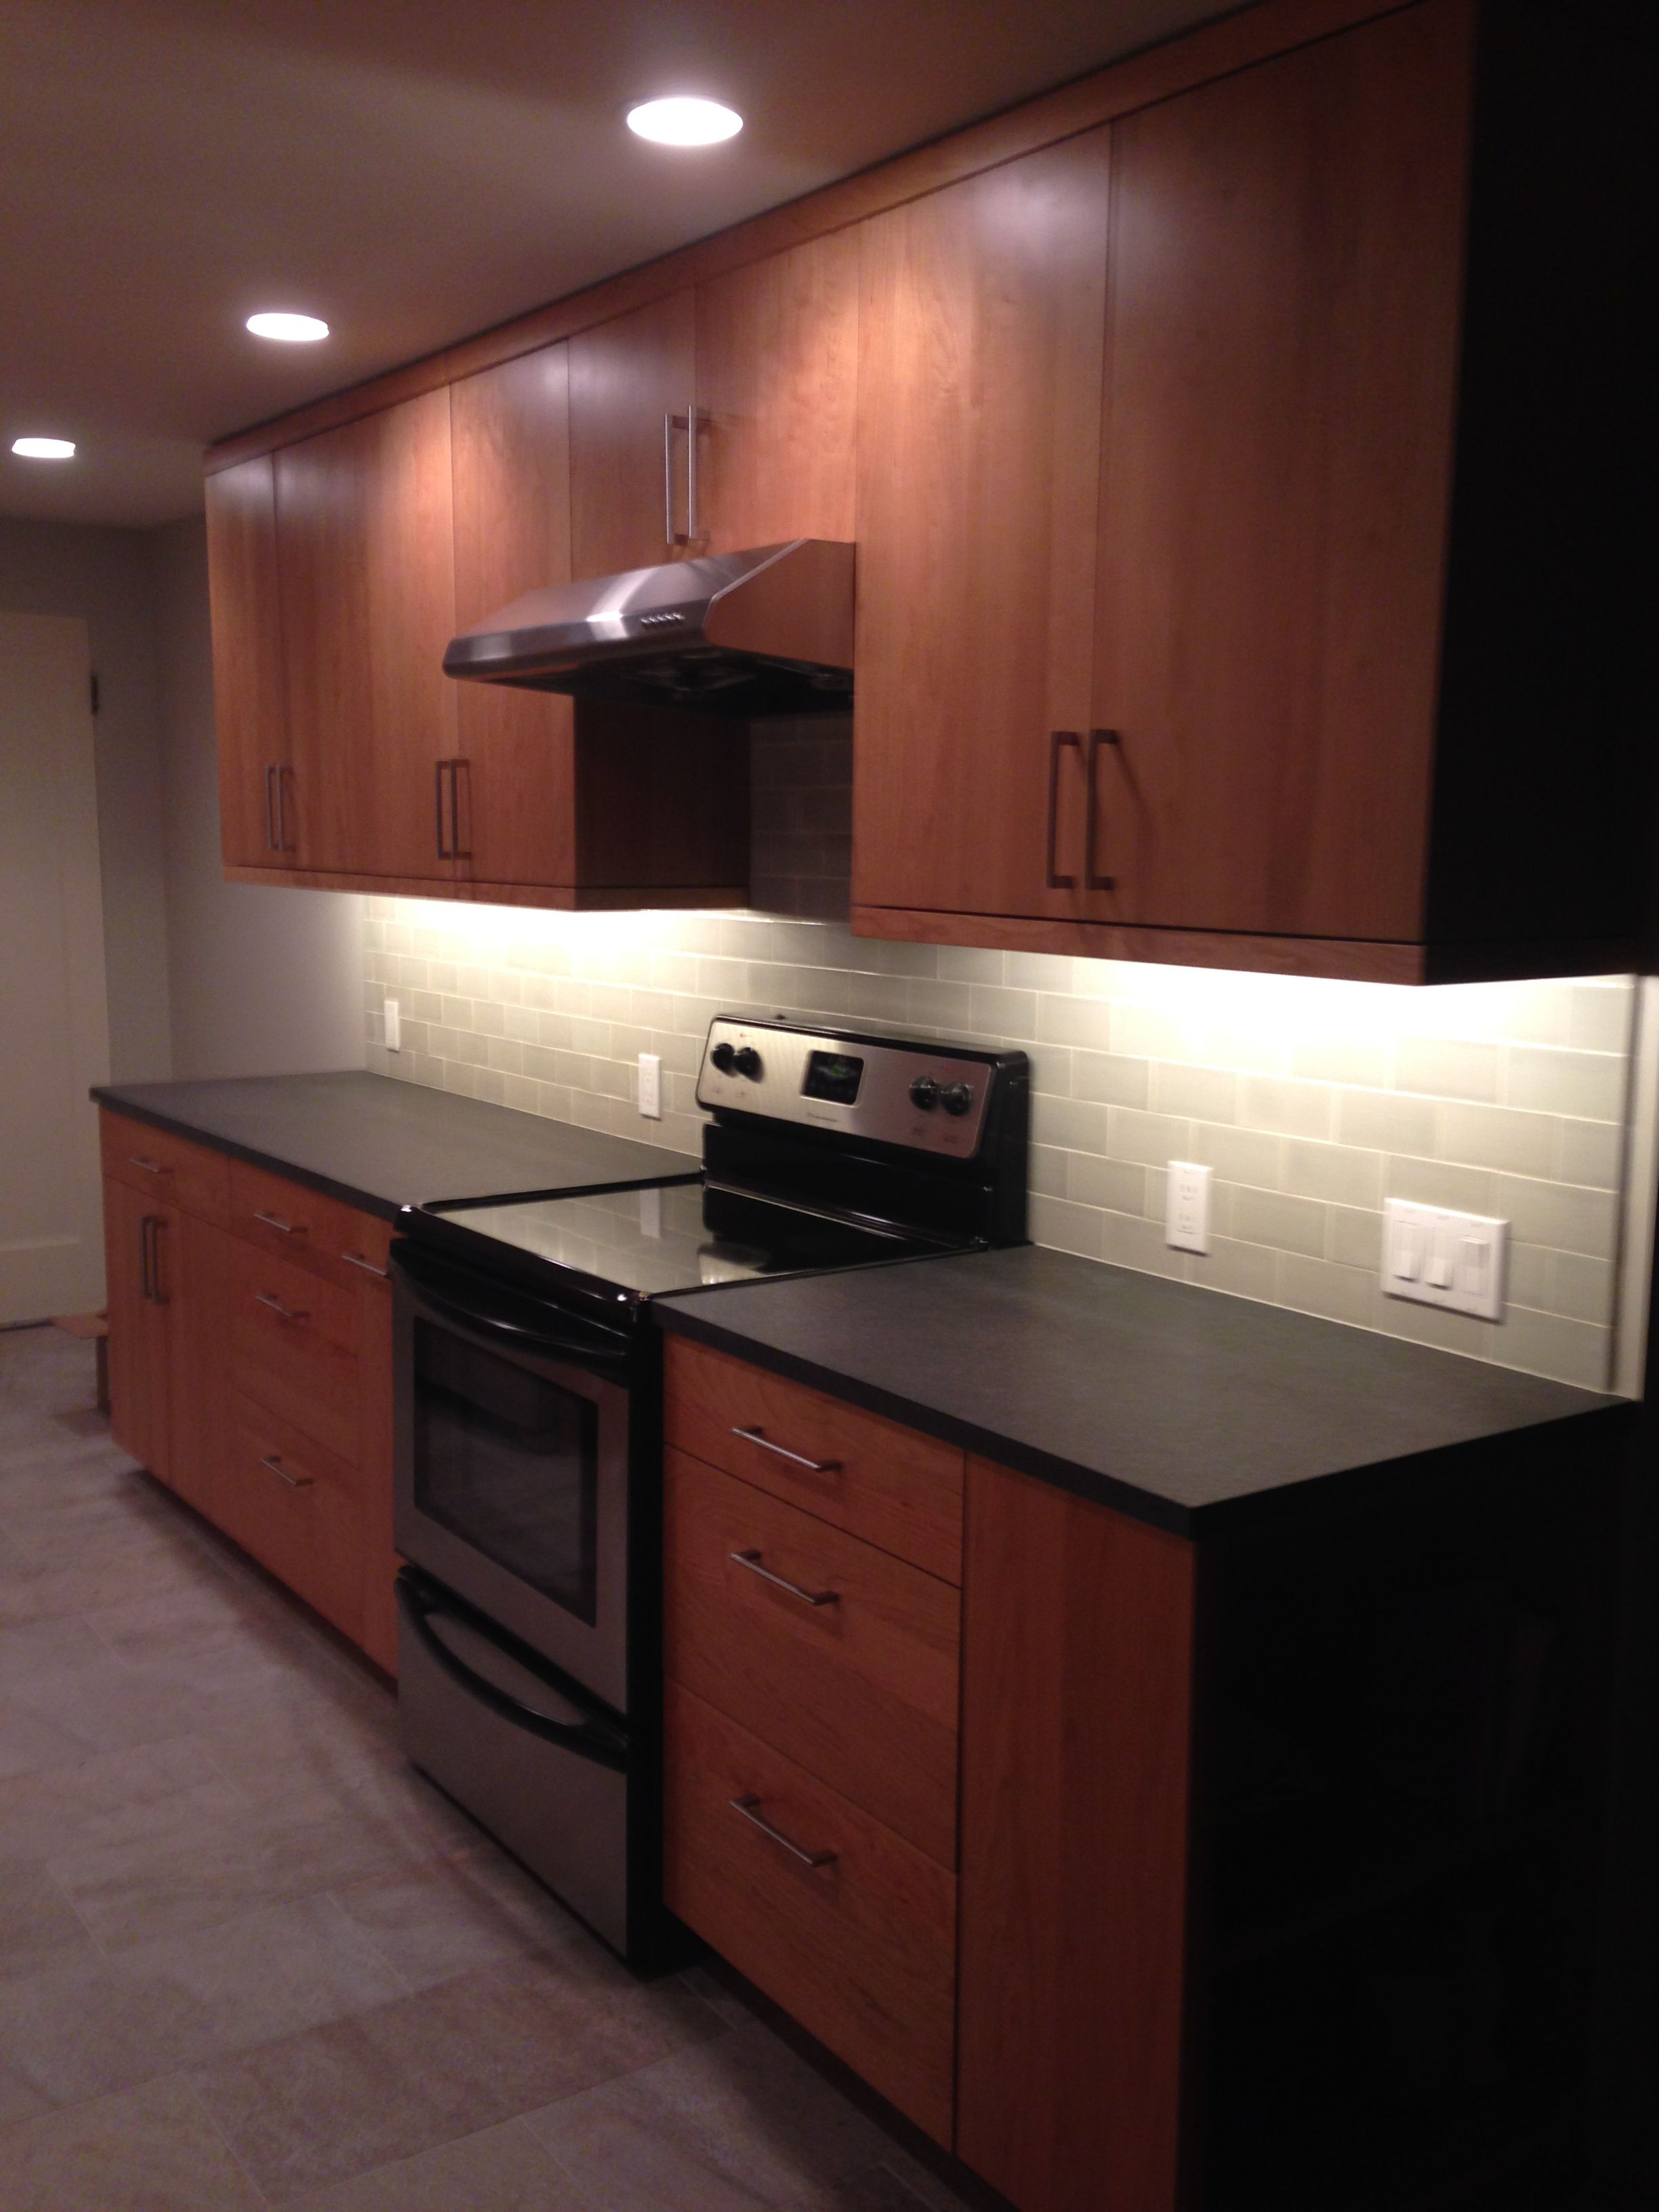 Fireclay Silver Haze Subway Backsplash, Absolute Black Anticado/leathered  Granite Counter, Pental Anthology Grey Floor Tile, DeWills Capella Cabinets  In ...